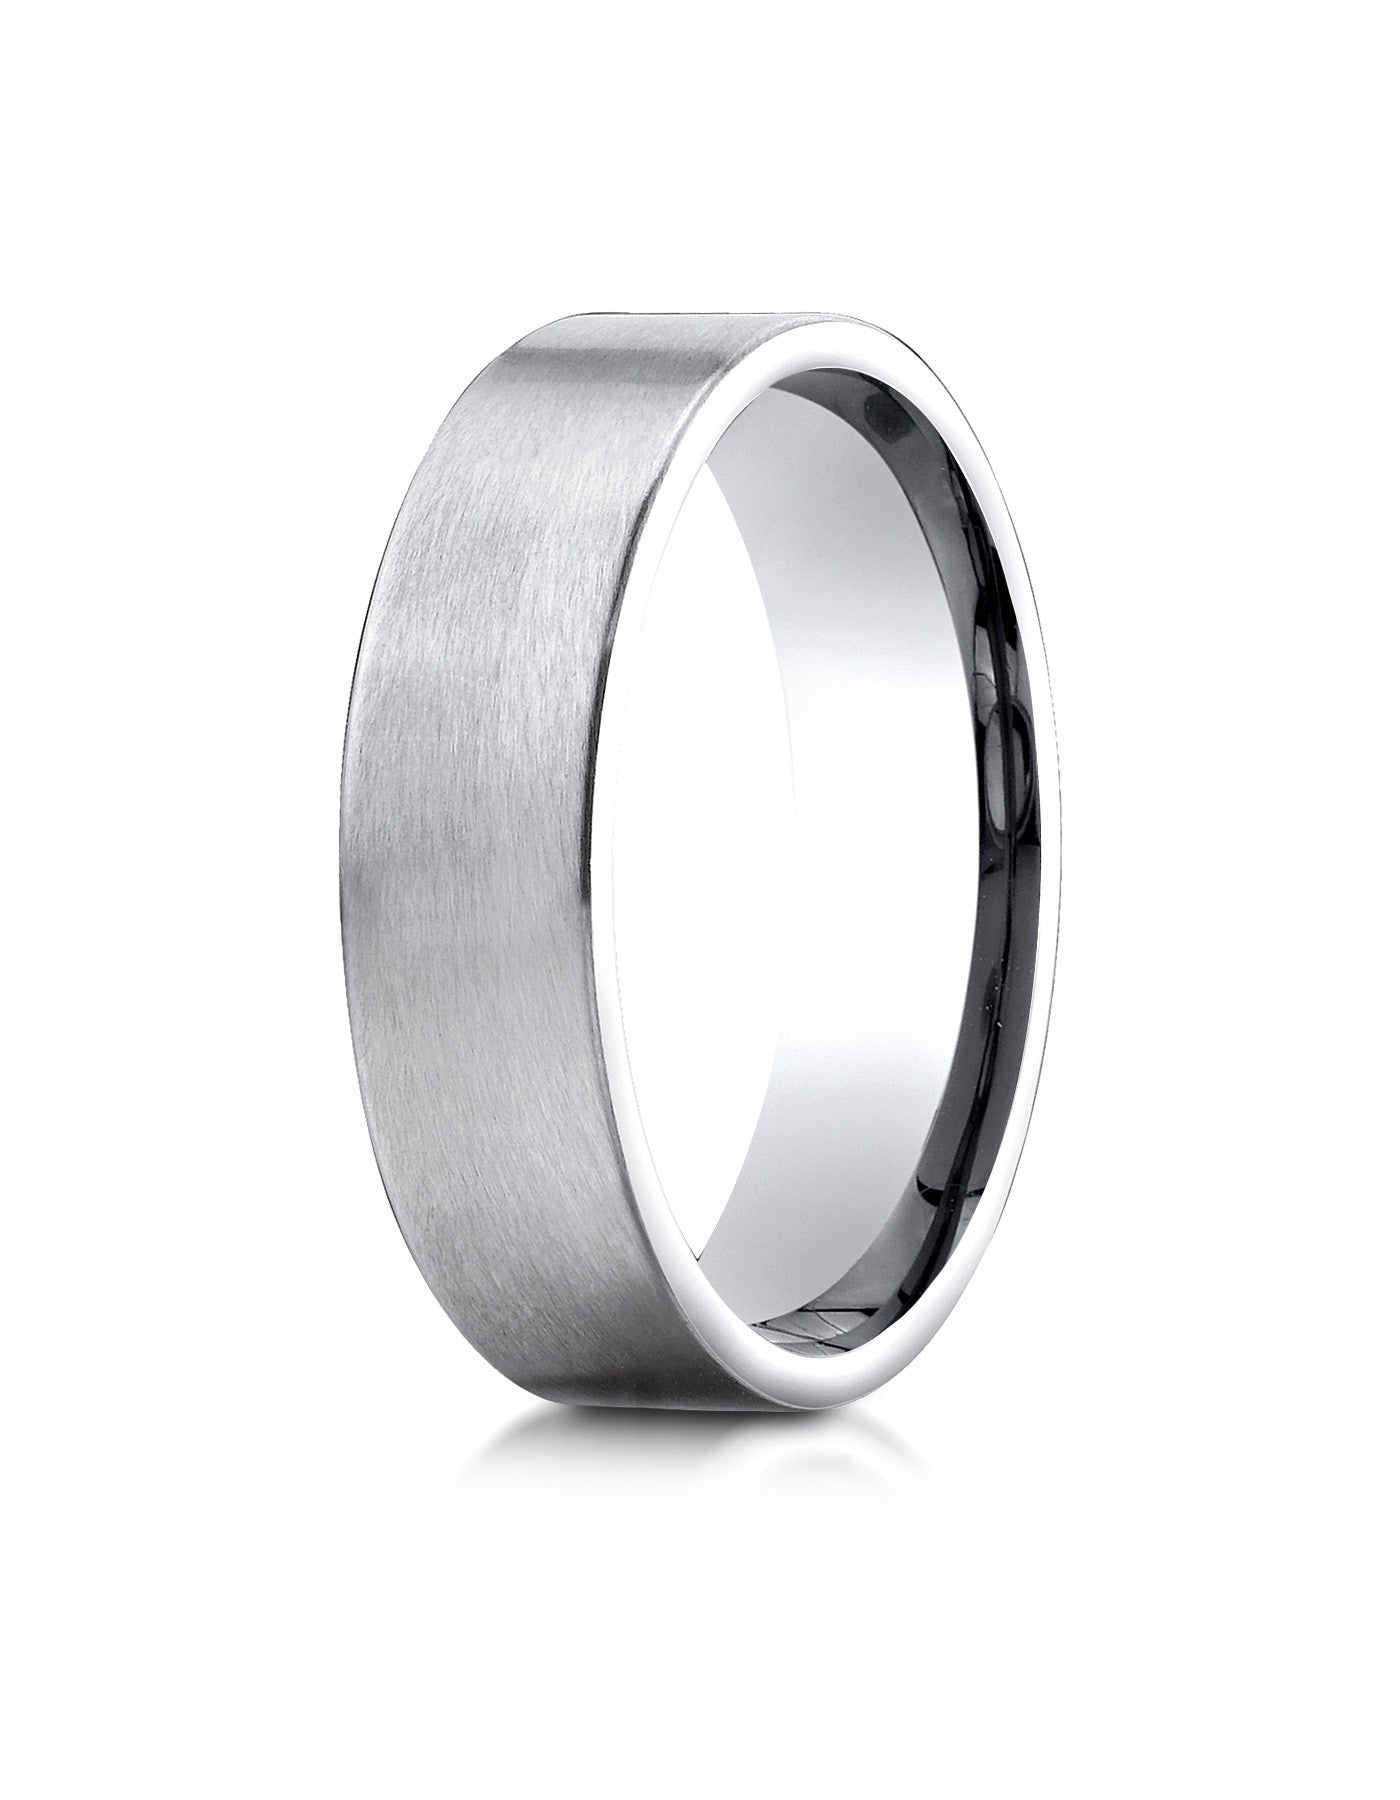 wedding in rings tungsten titanium cobalt bride gold on images best bands manufactured by bling pinterest and skatells benchmark beautiful platinum silver